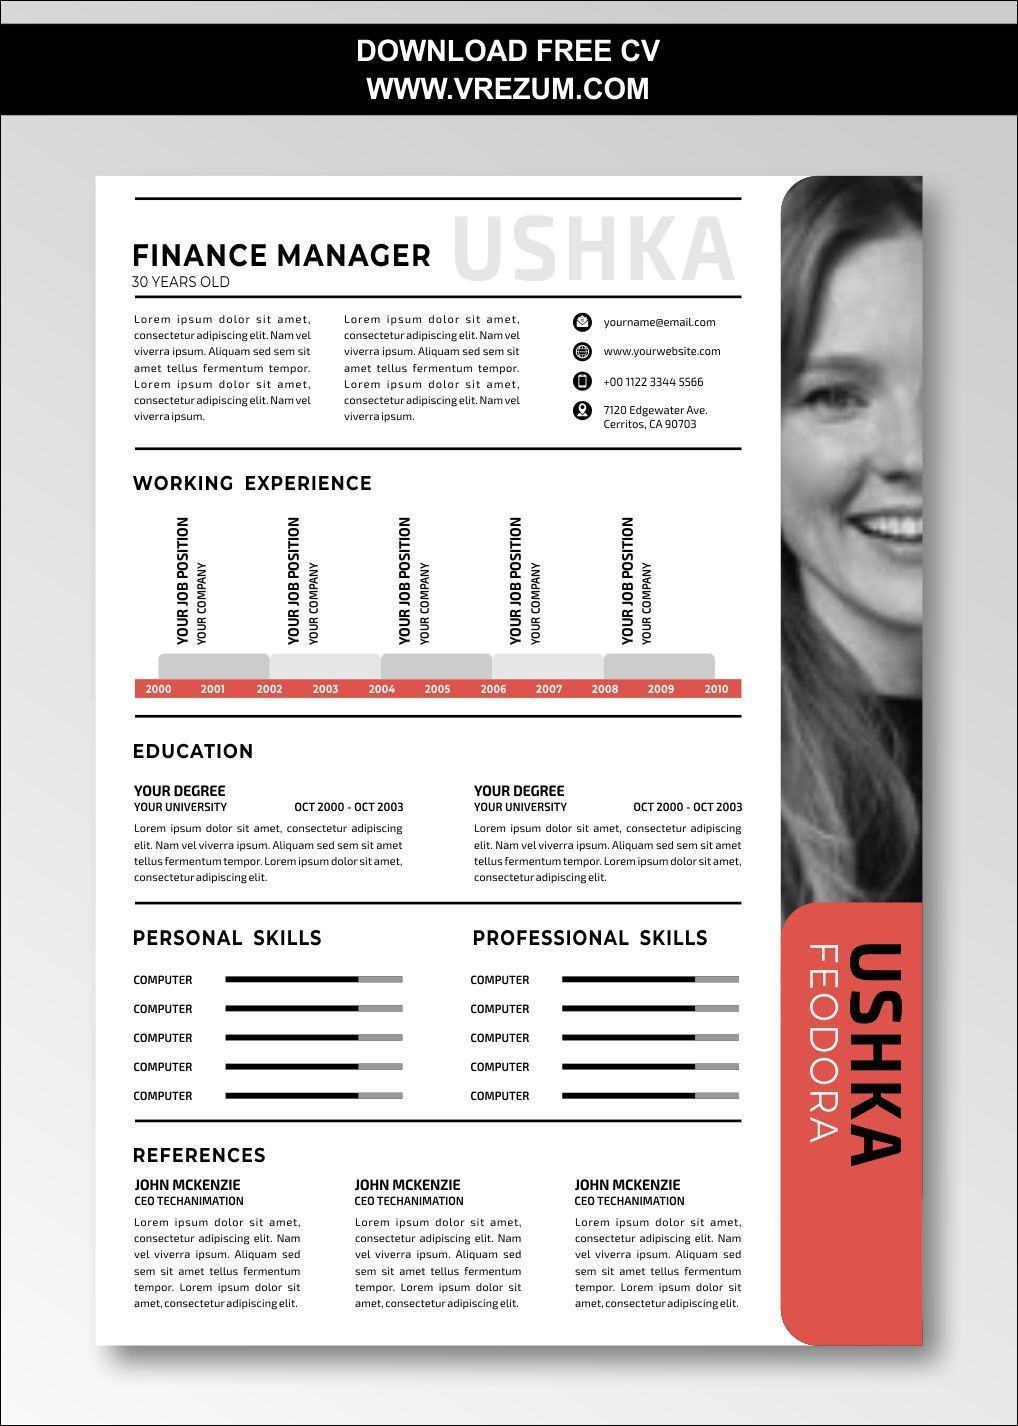 (EDITABLE) FREE CV Templates For Finance Manager in 2020